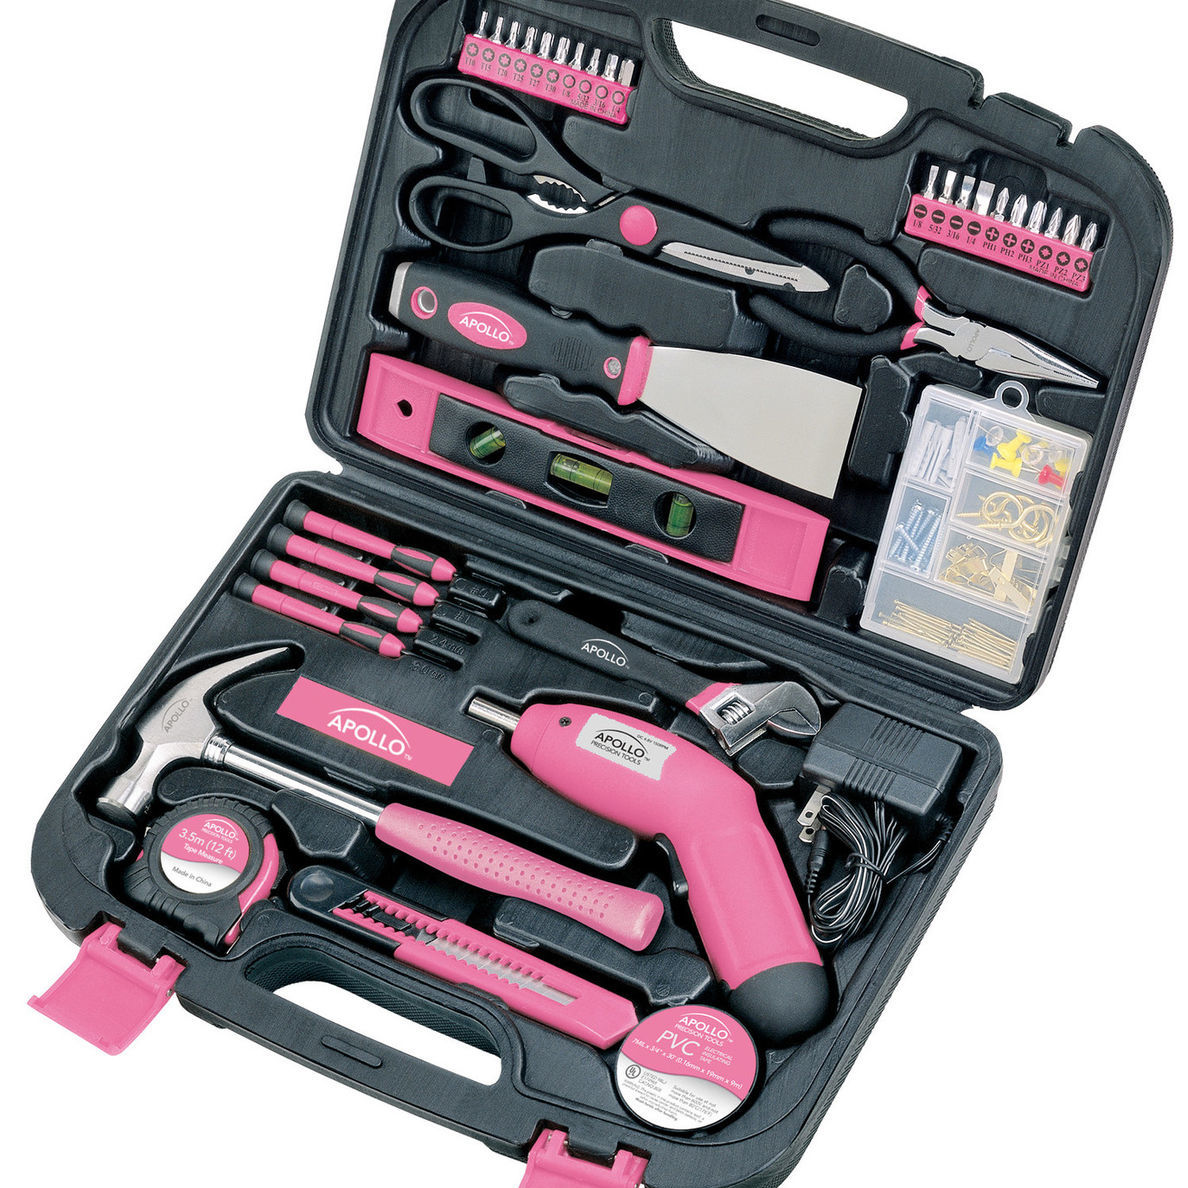 Houzz 135-piece tool kit in pink photo